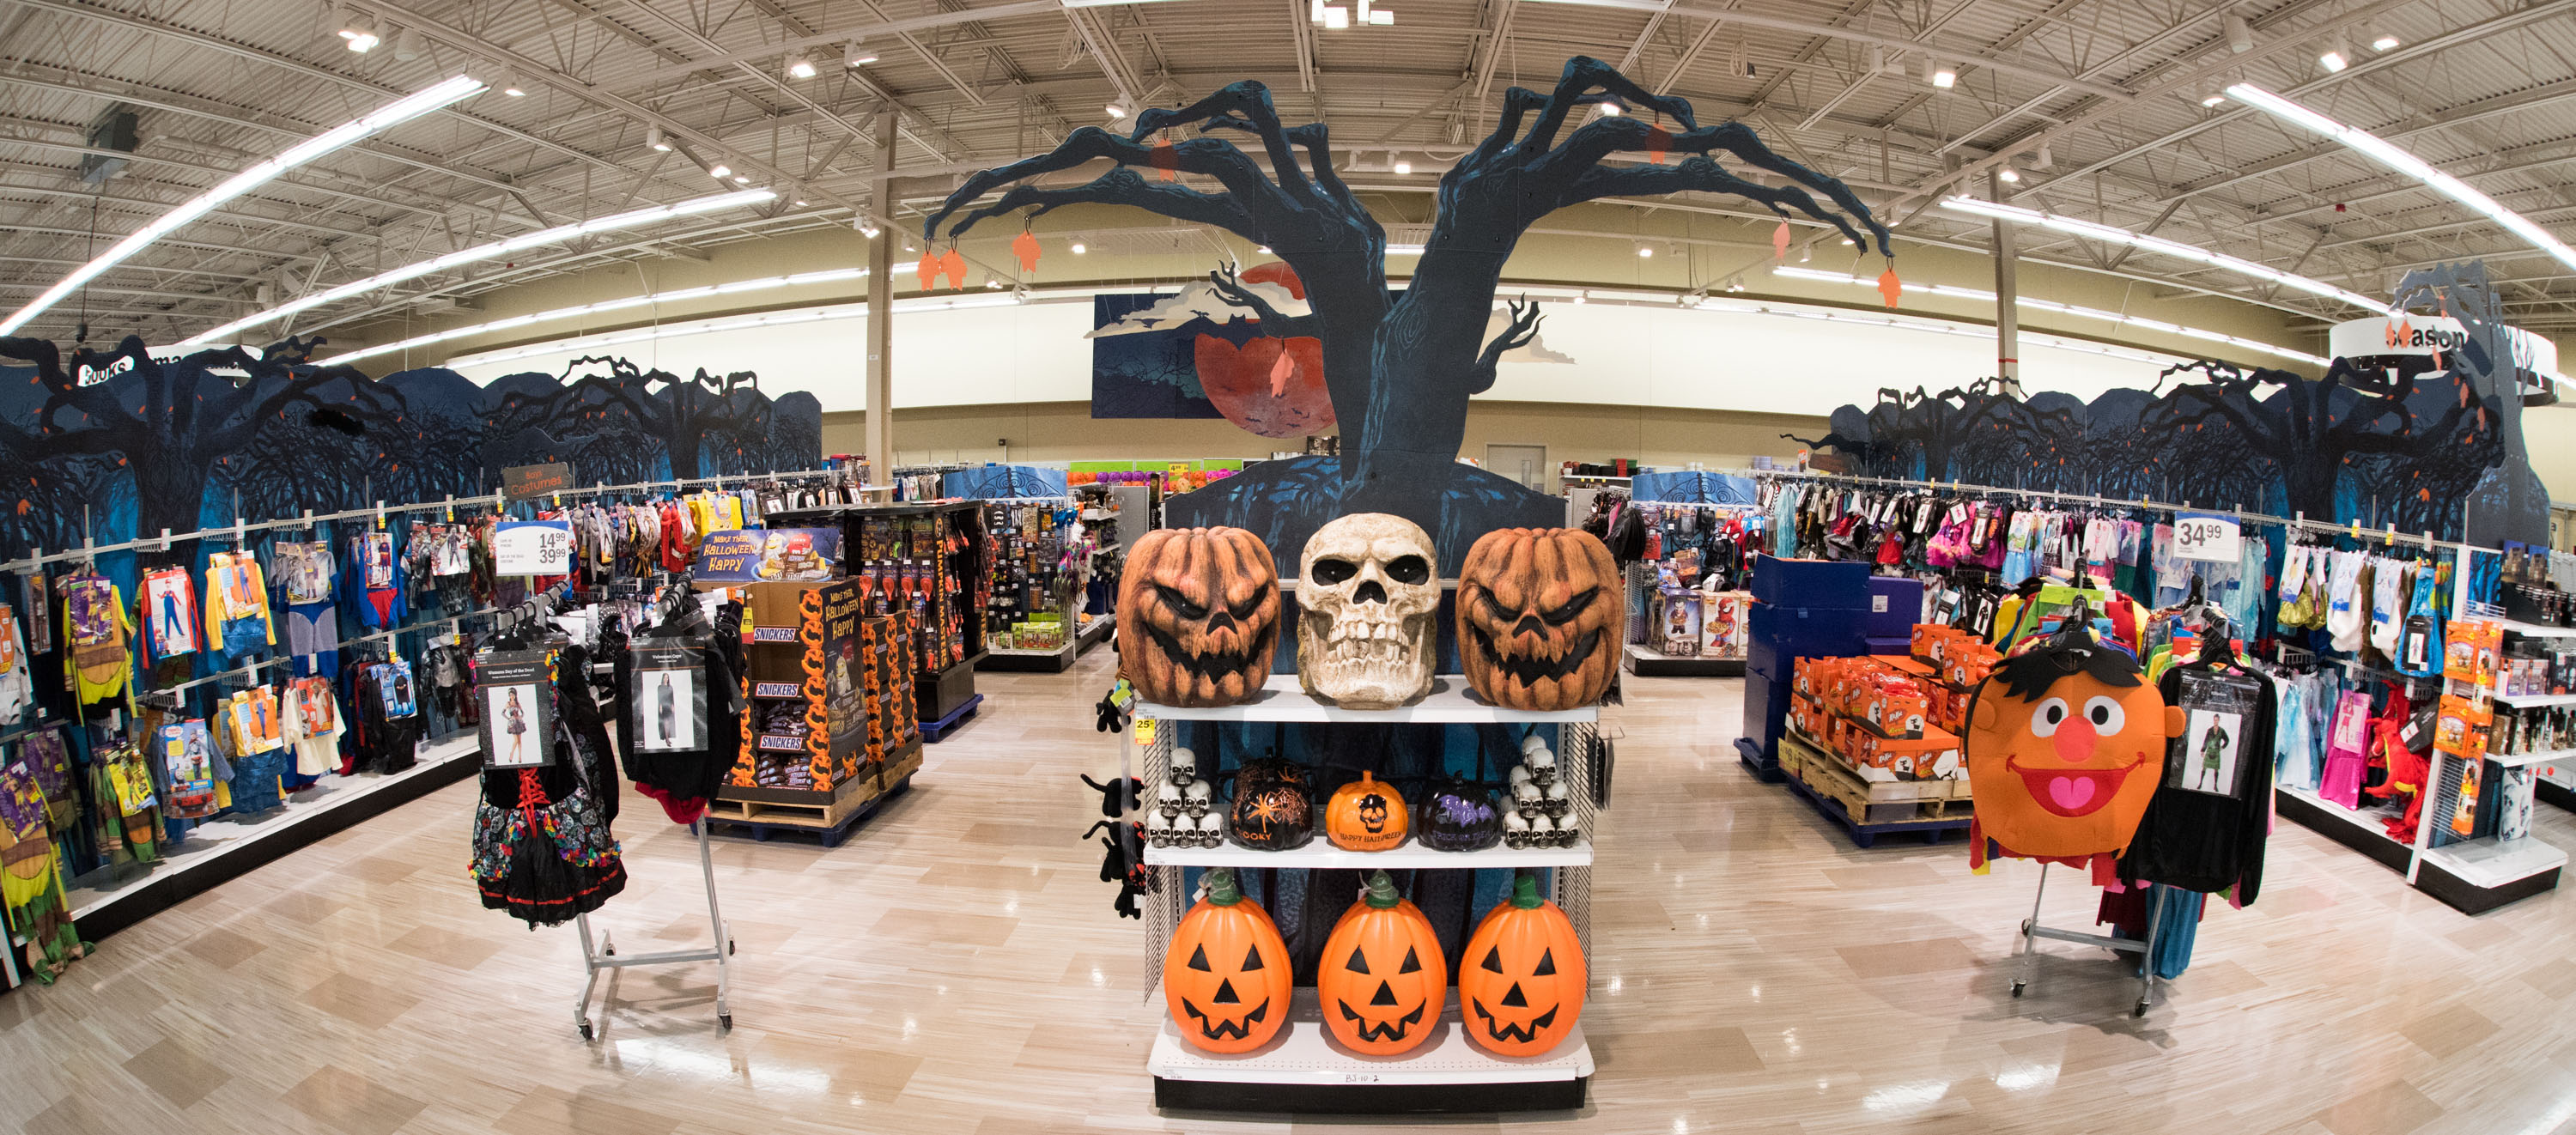 Halloween Store Costumes Decorations LA